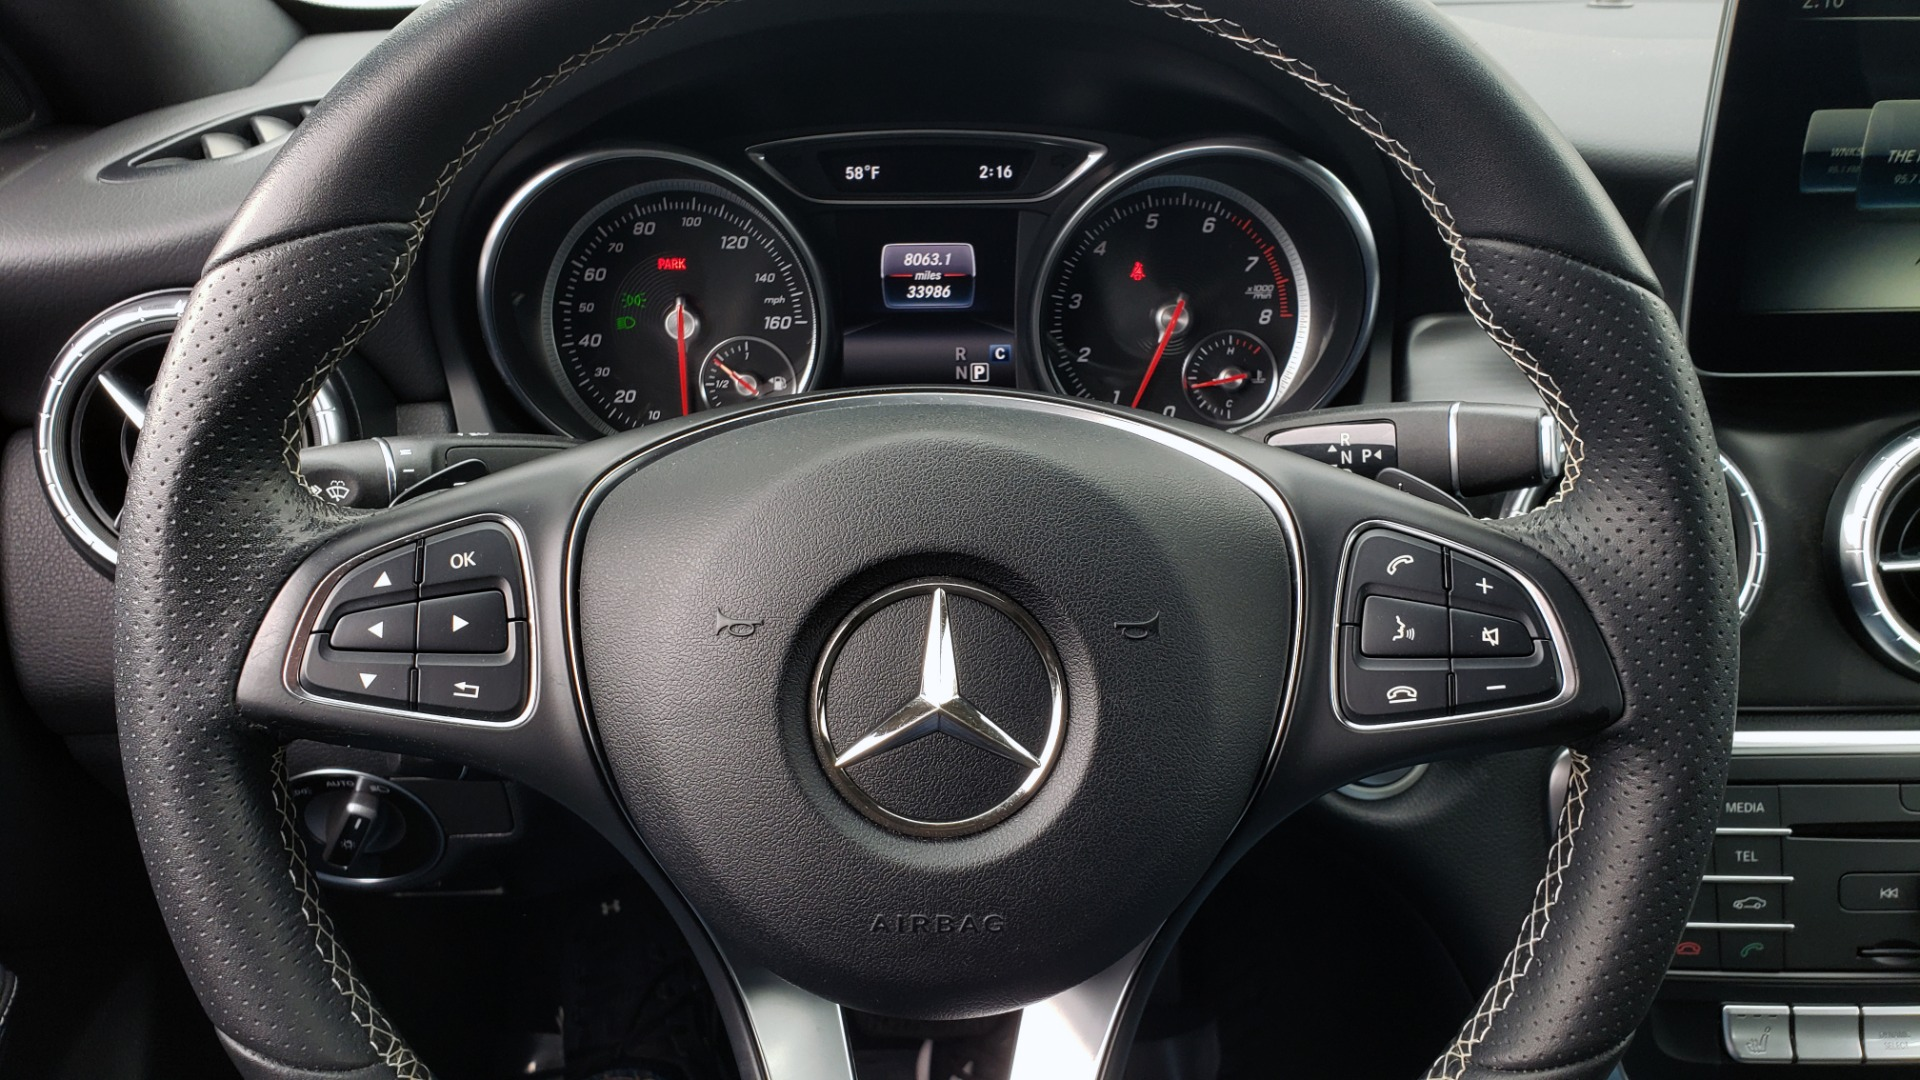 Used 2018 Mercedes-Benz CLA 250 PREMIUM / NAV / PANO-ROOF / APPLE CARPLAY / REARVIEW for sale $23,995 at Formula Imports in Charlotte NC 28227 39